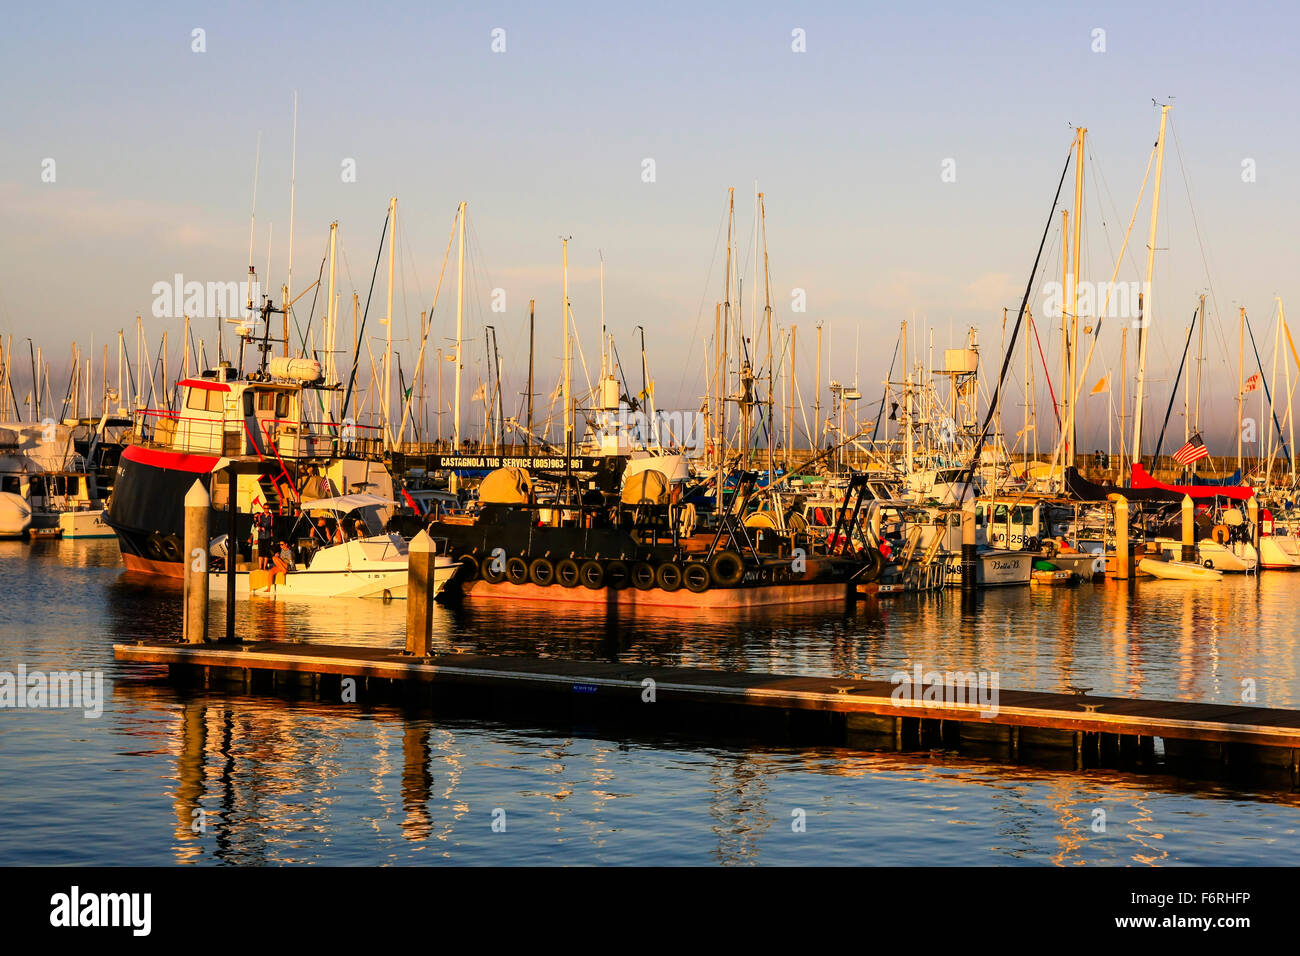 Fishing boats and pleasure craft all tied up in the Santa Barbara Marina and commercial harbor in California - Stock Image